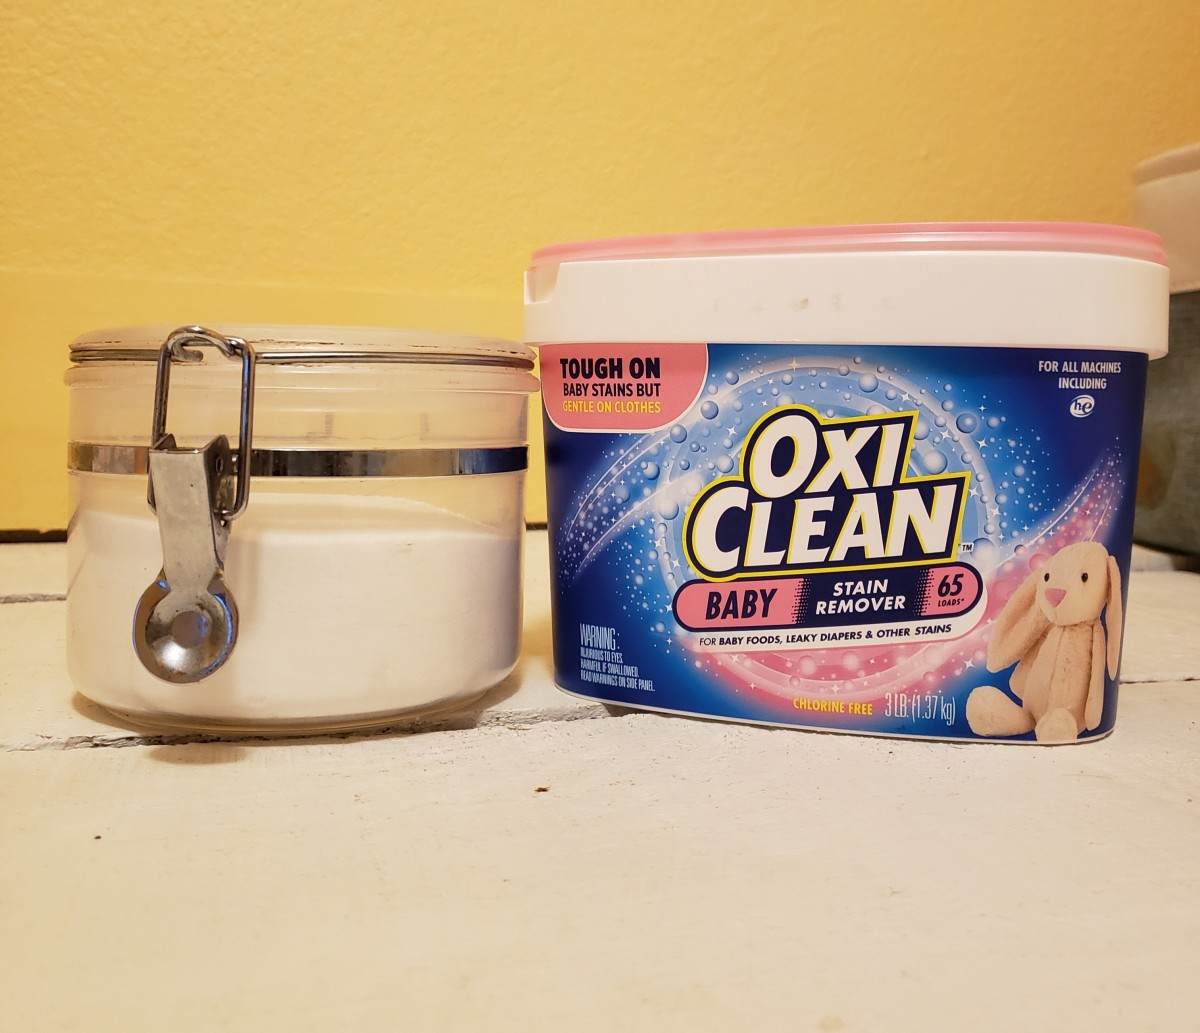 Borax and Oxiclean are my go-to products for softening my hard water and cleaning my cloth diapers.